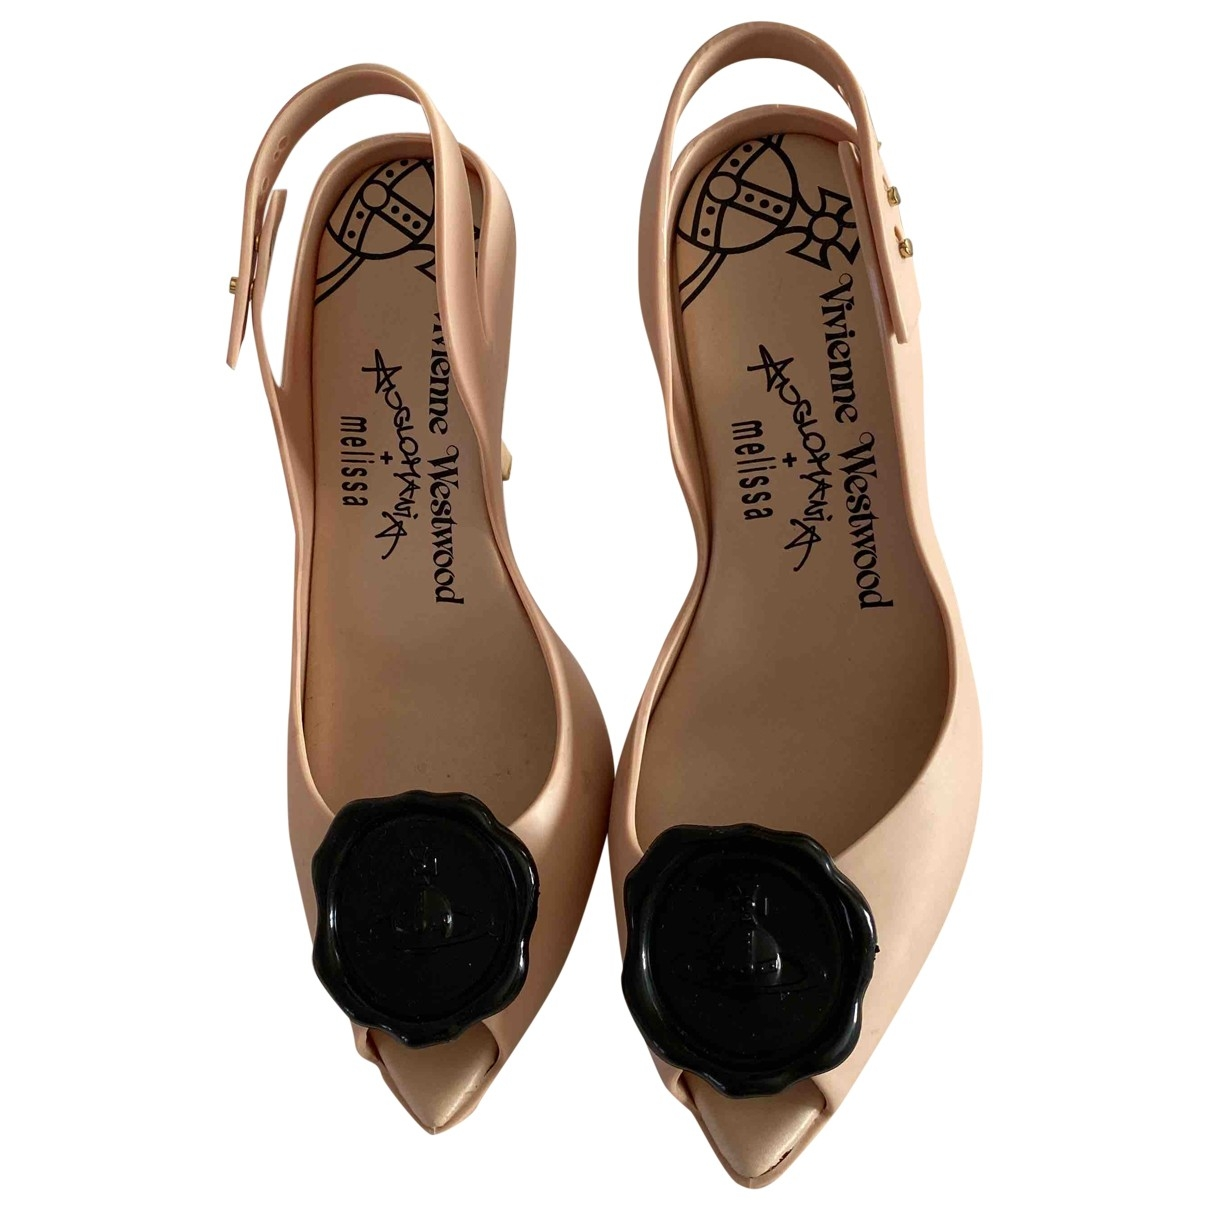 Vivienne Westwood Anglomania \N Beige Rubber Sandals for Women 37 EU